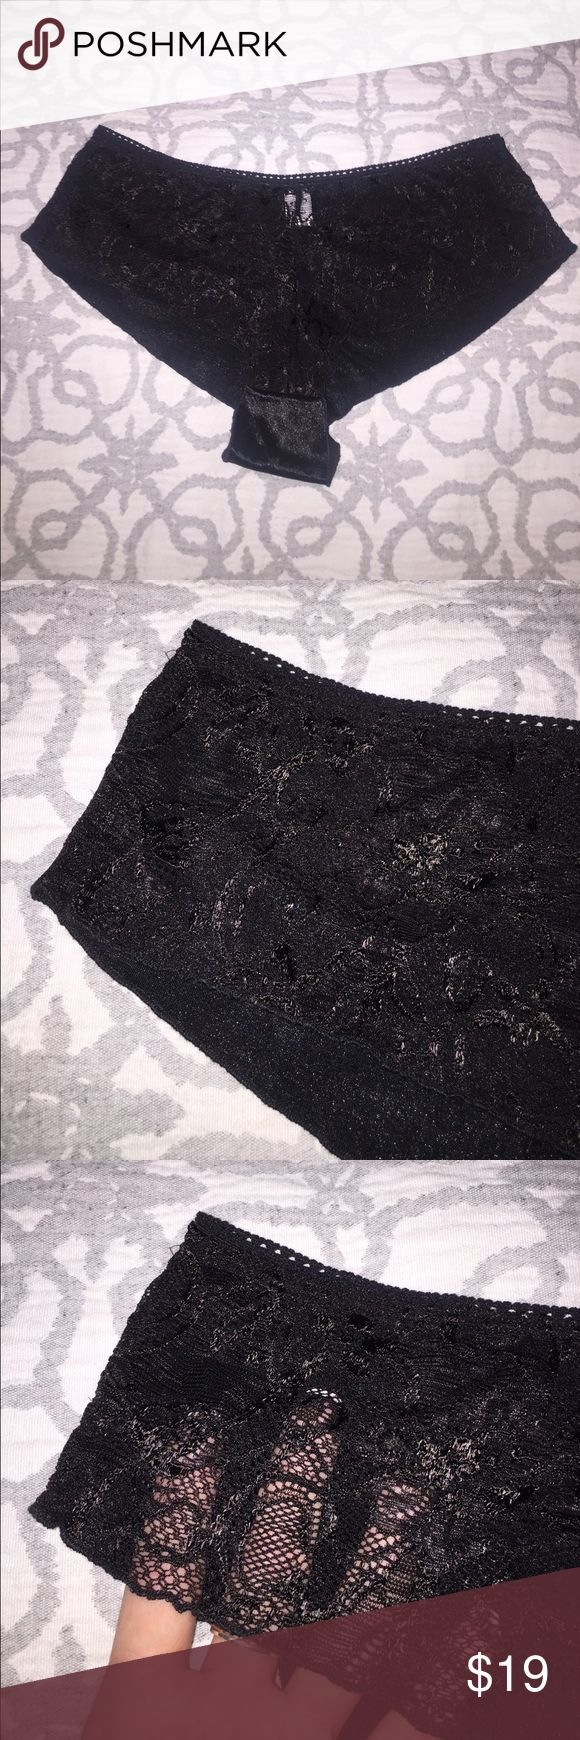 Lace Front with Stretch Satin Back Hotshort ✨New✨ Lace Front with Stretch Satin Back Hotshort ✨New without tags✨ Beautiful Lace and super soft luxurious stretch Satin. ❤️ Intimates & Sleepwear Panties